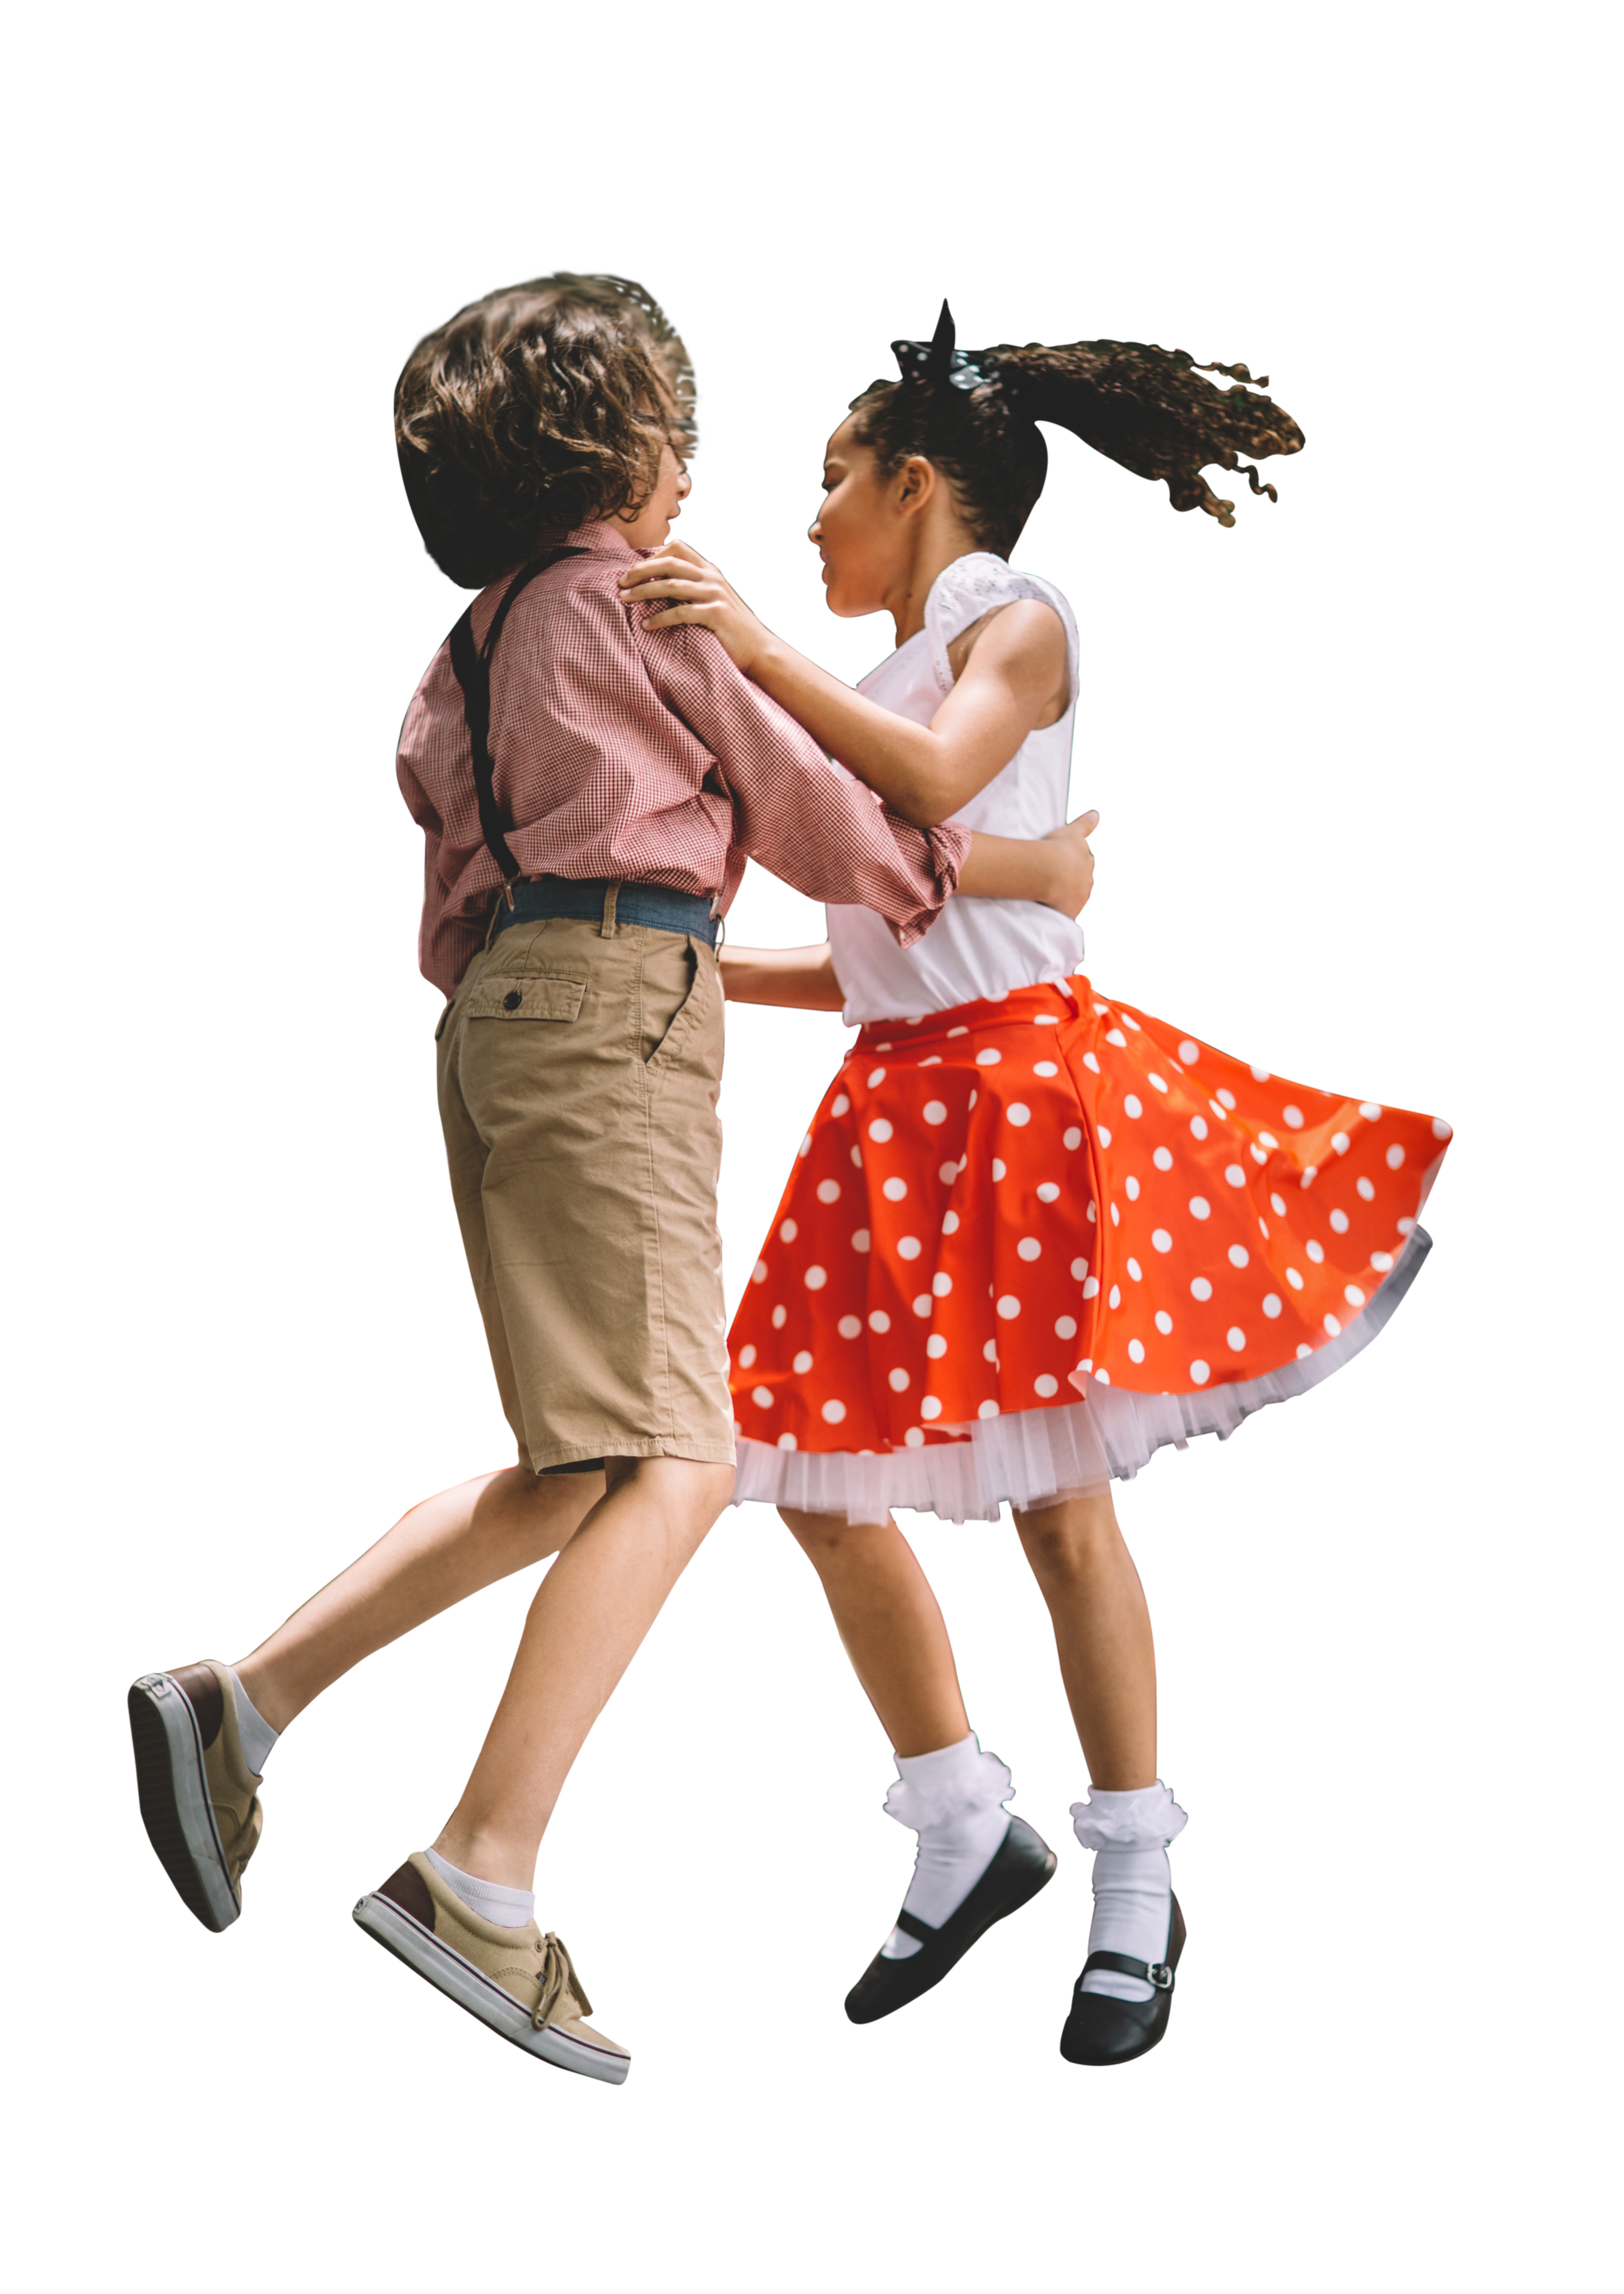 Couple Dance PNG Image